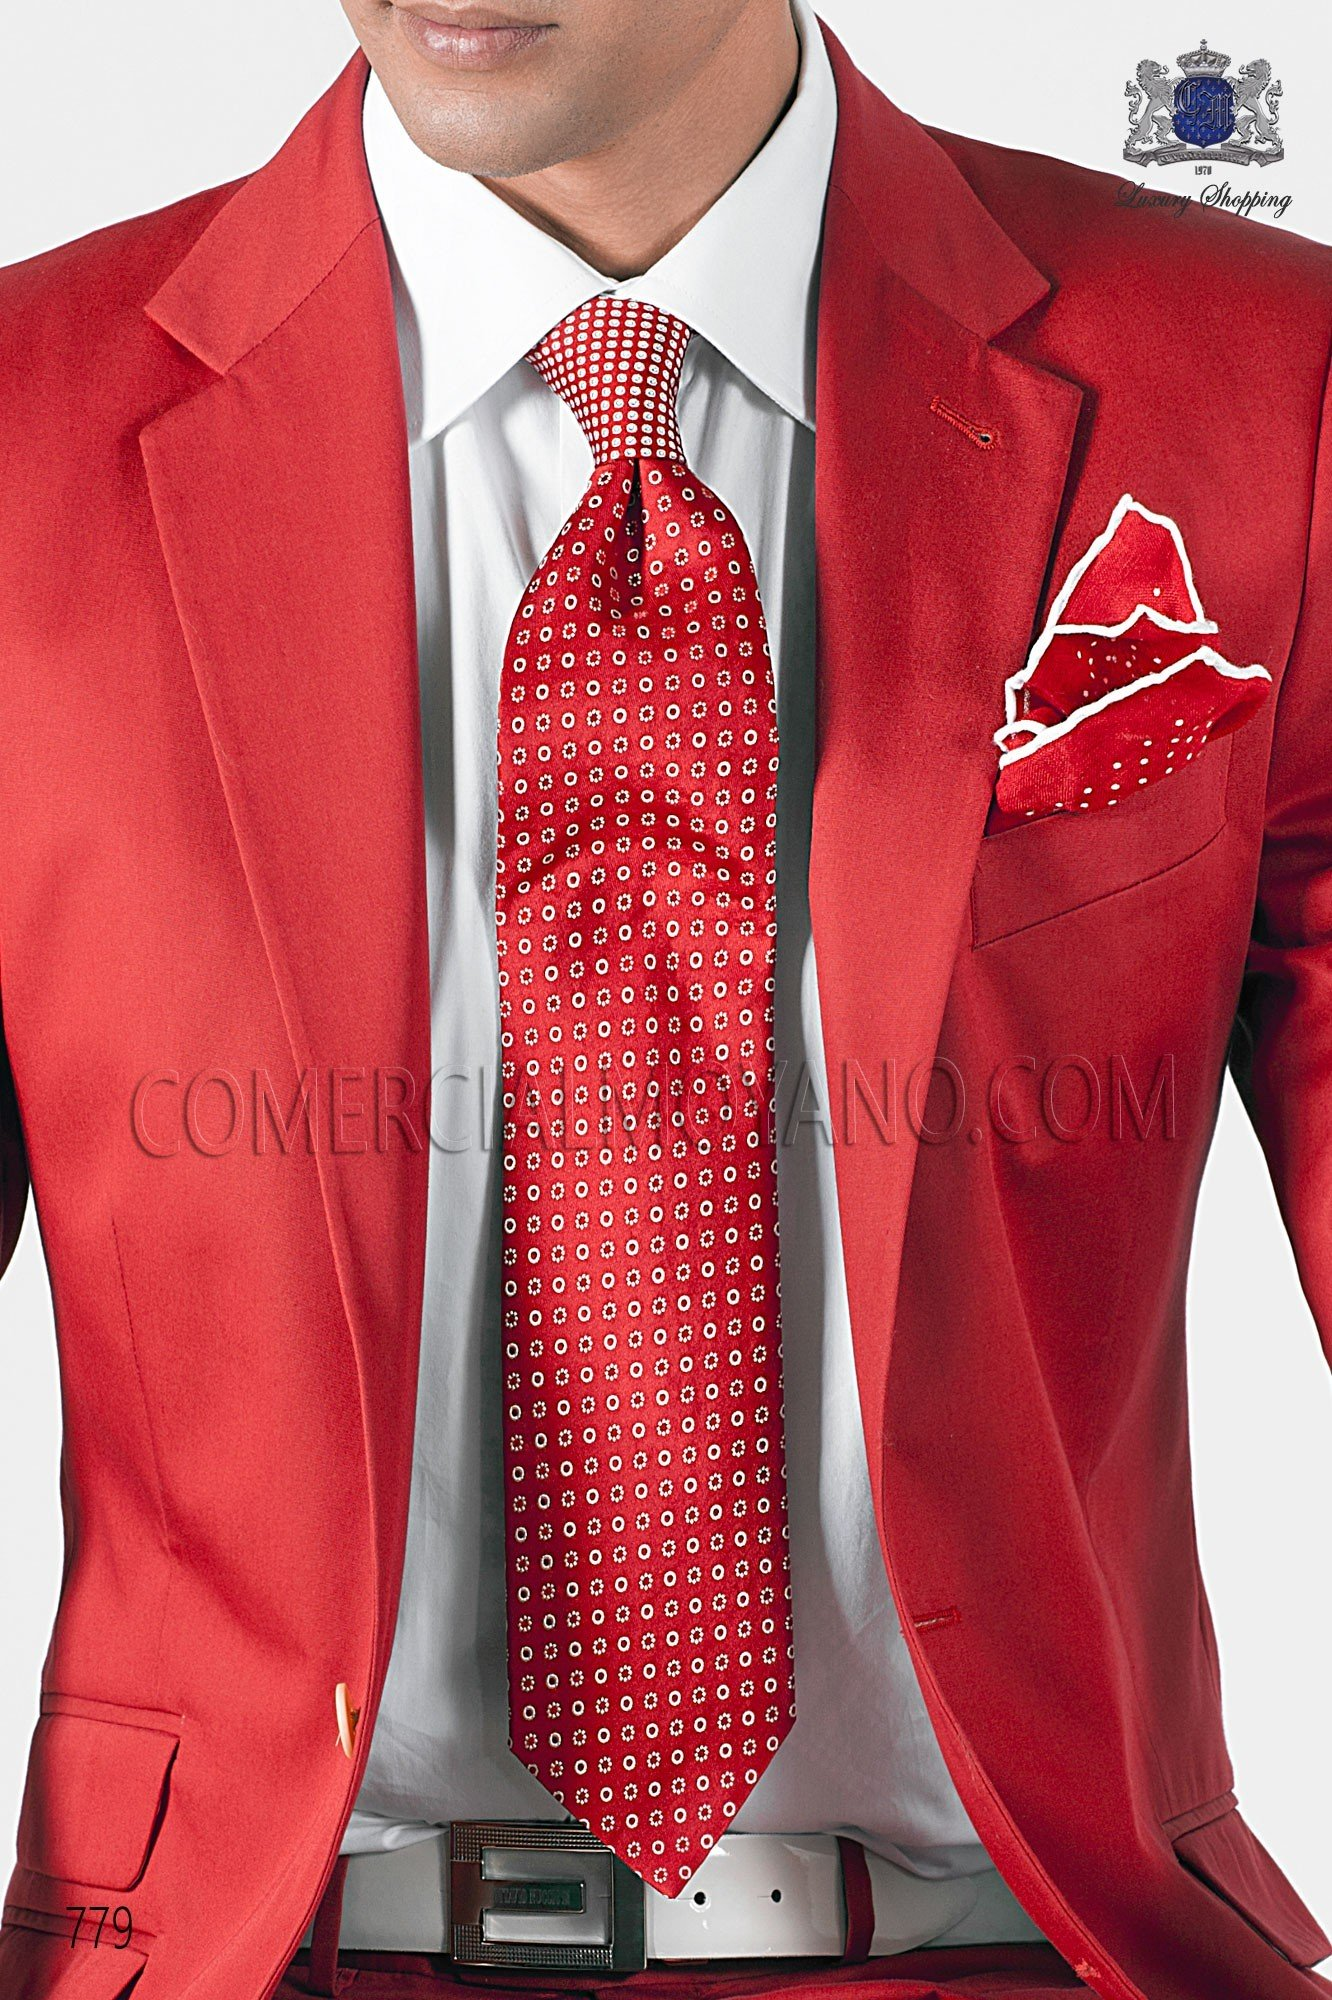 Italian hipster red men wedding suit, model: 779 Ottavio Nuccio Gala 2017 Hipster Collection